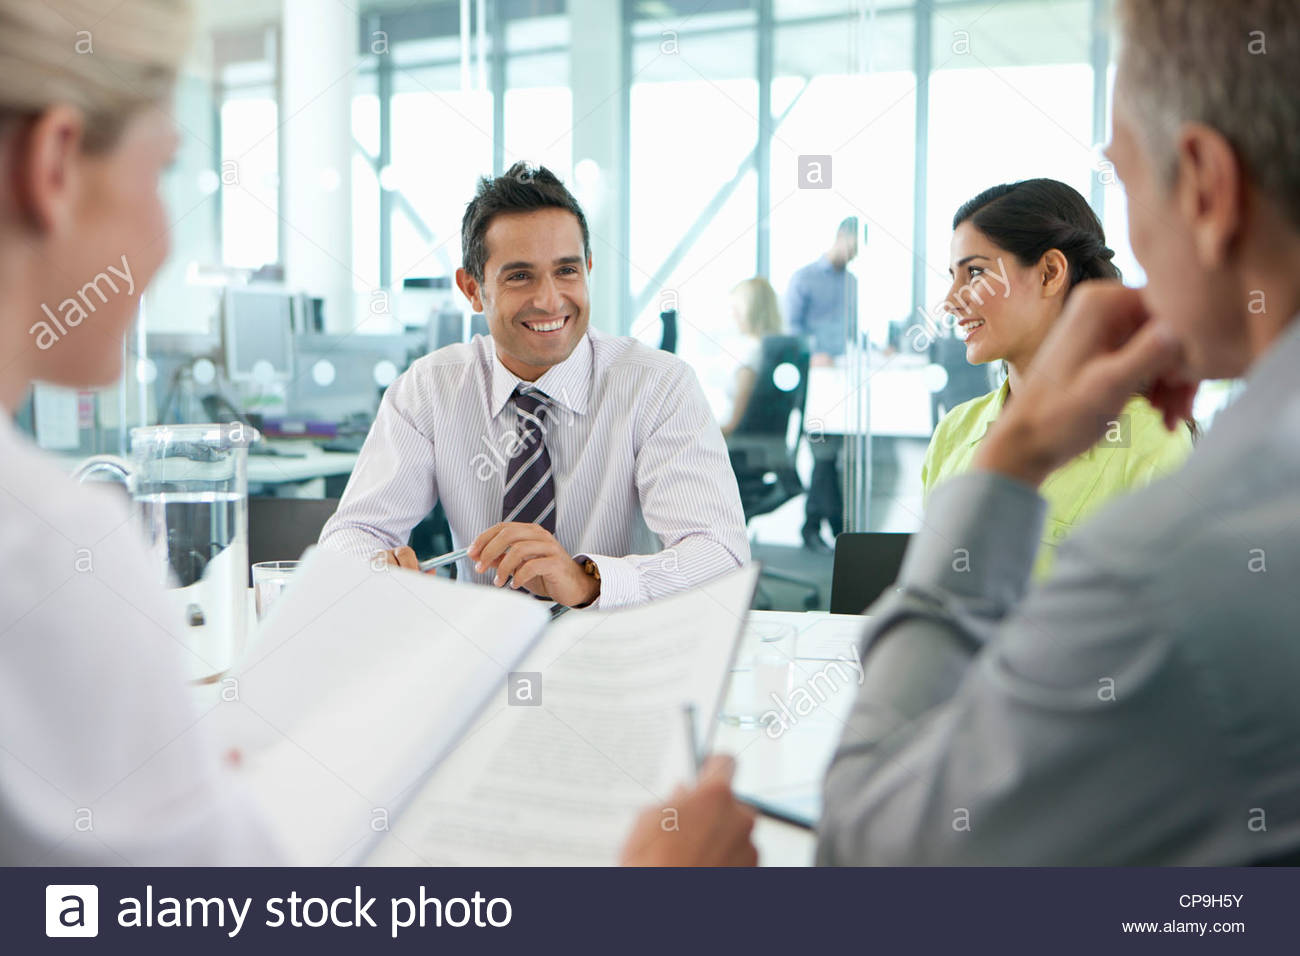 Smiling business people meeting in conference room Photo Stock